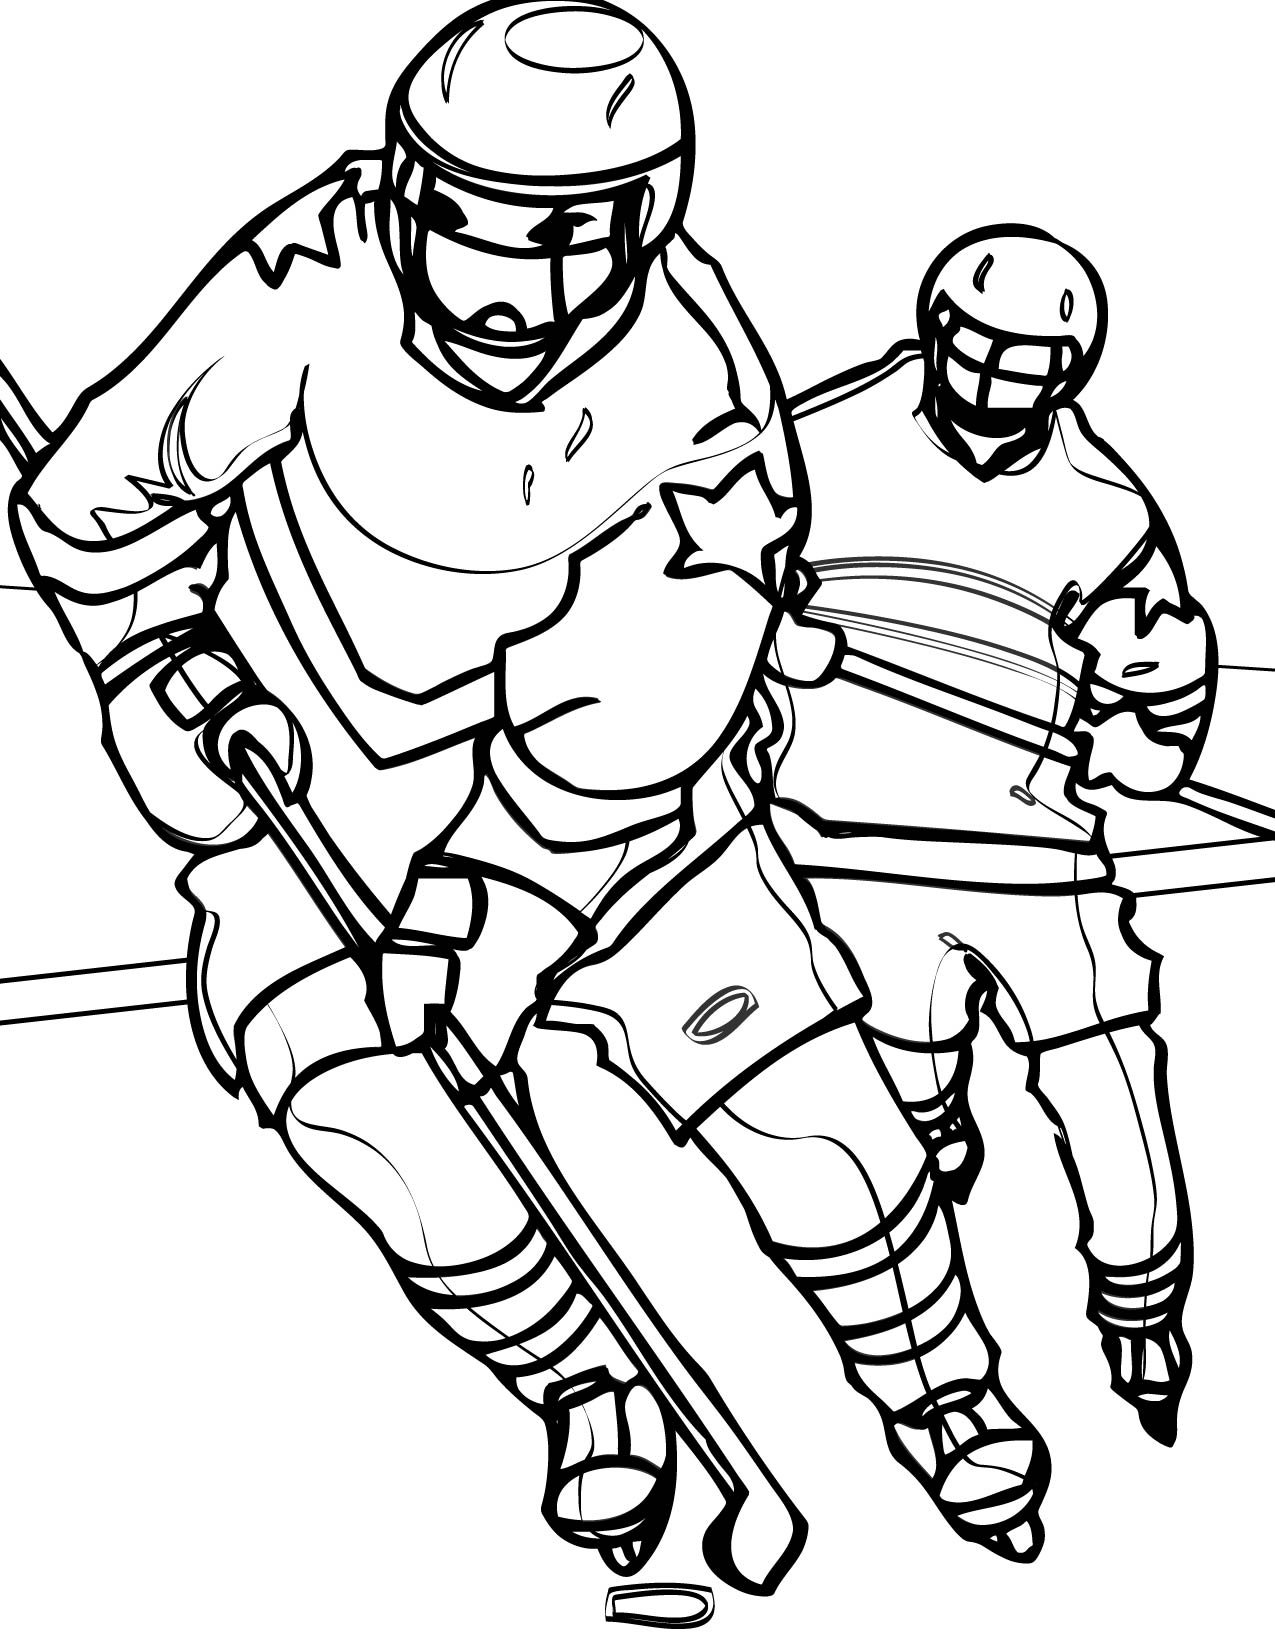 sports coloring pages for kid - photo#14